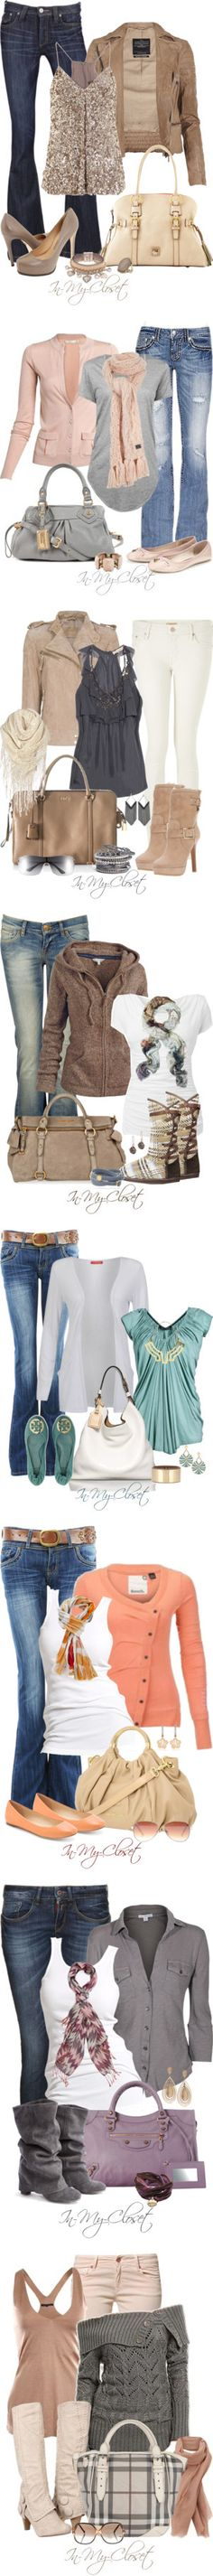 """My Favorite Things"" by in-my-closet on Polyvore"